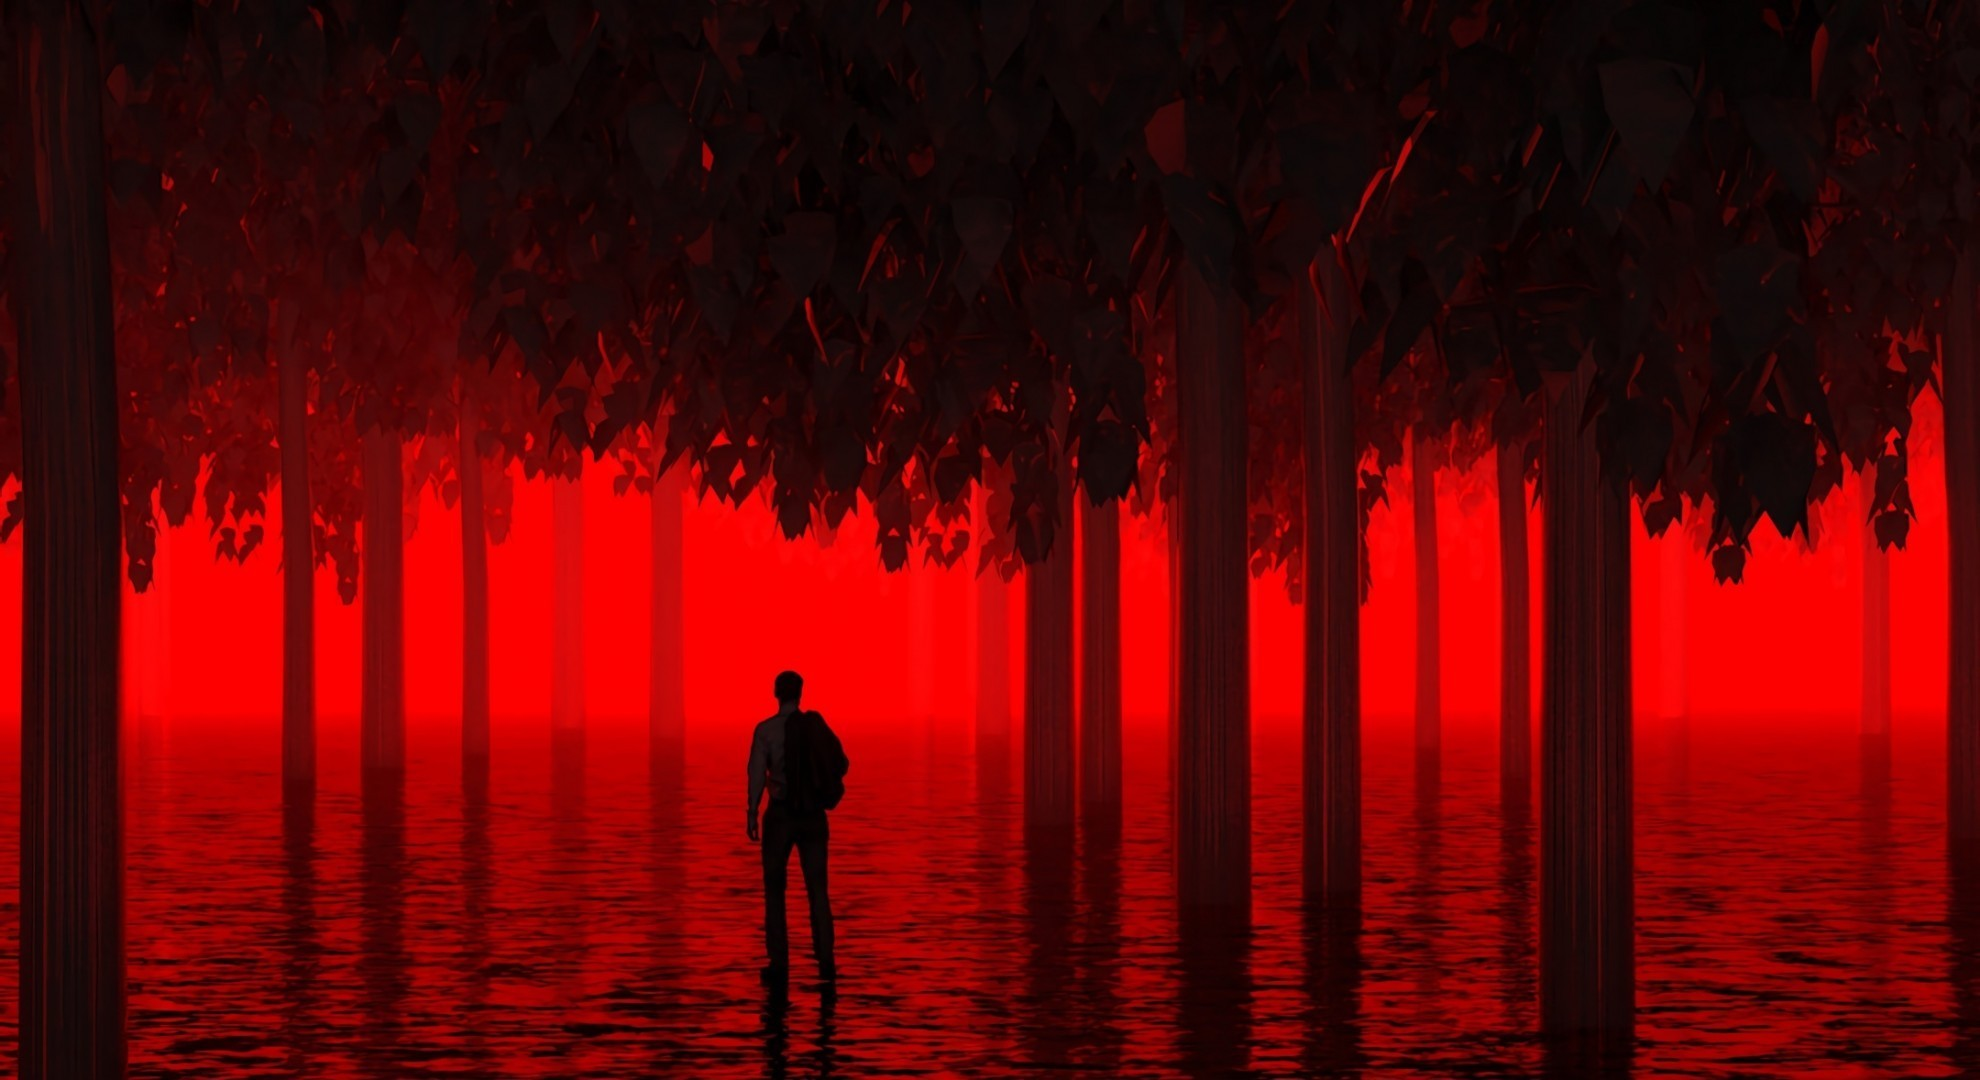 Res: 1980x1080, Red Forest, Thriller, Man Silhouette